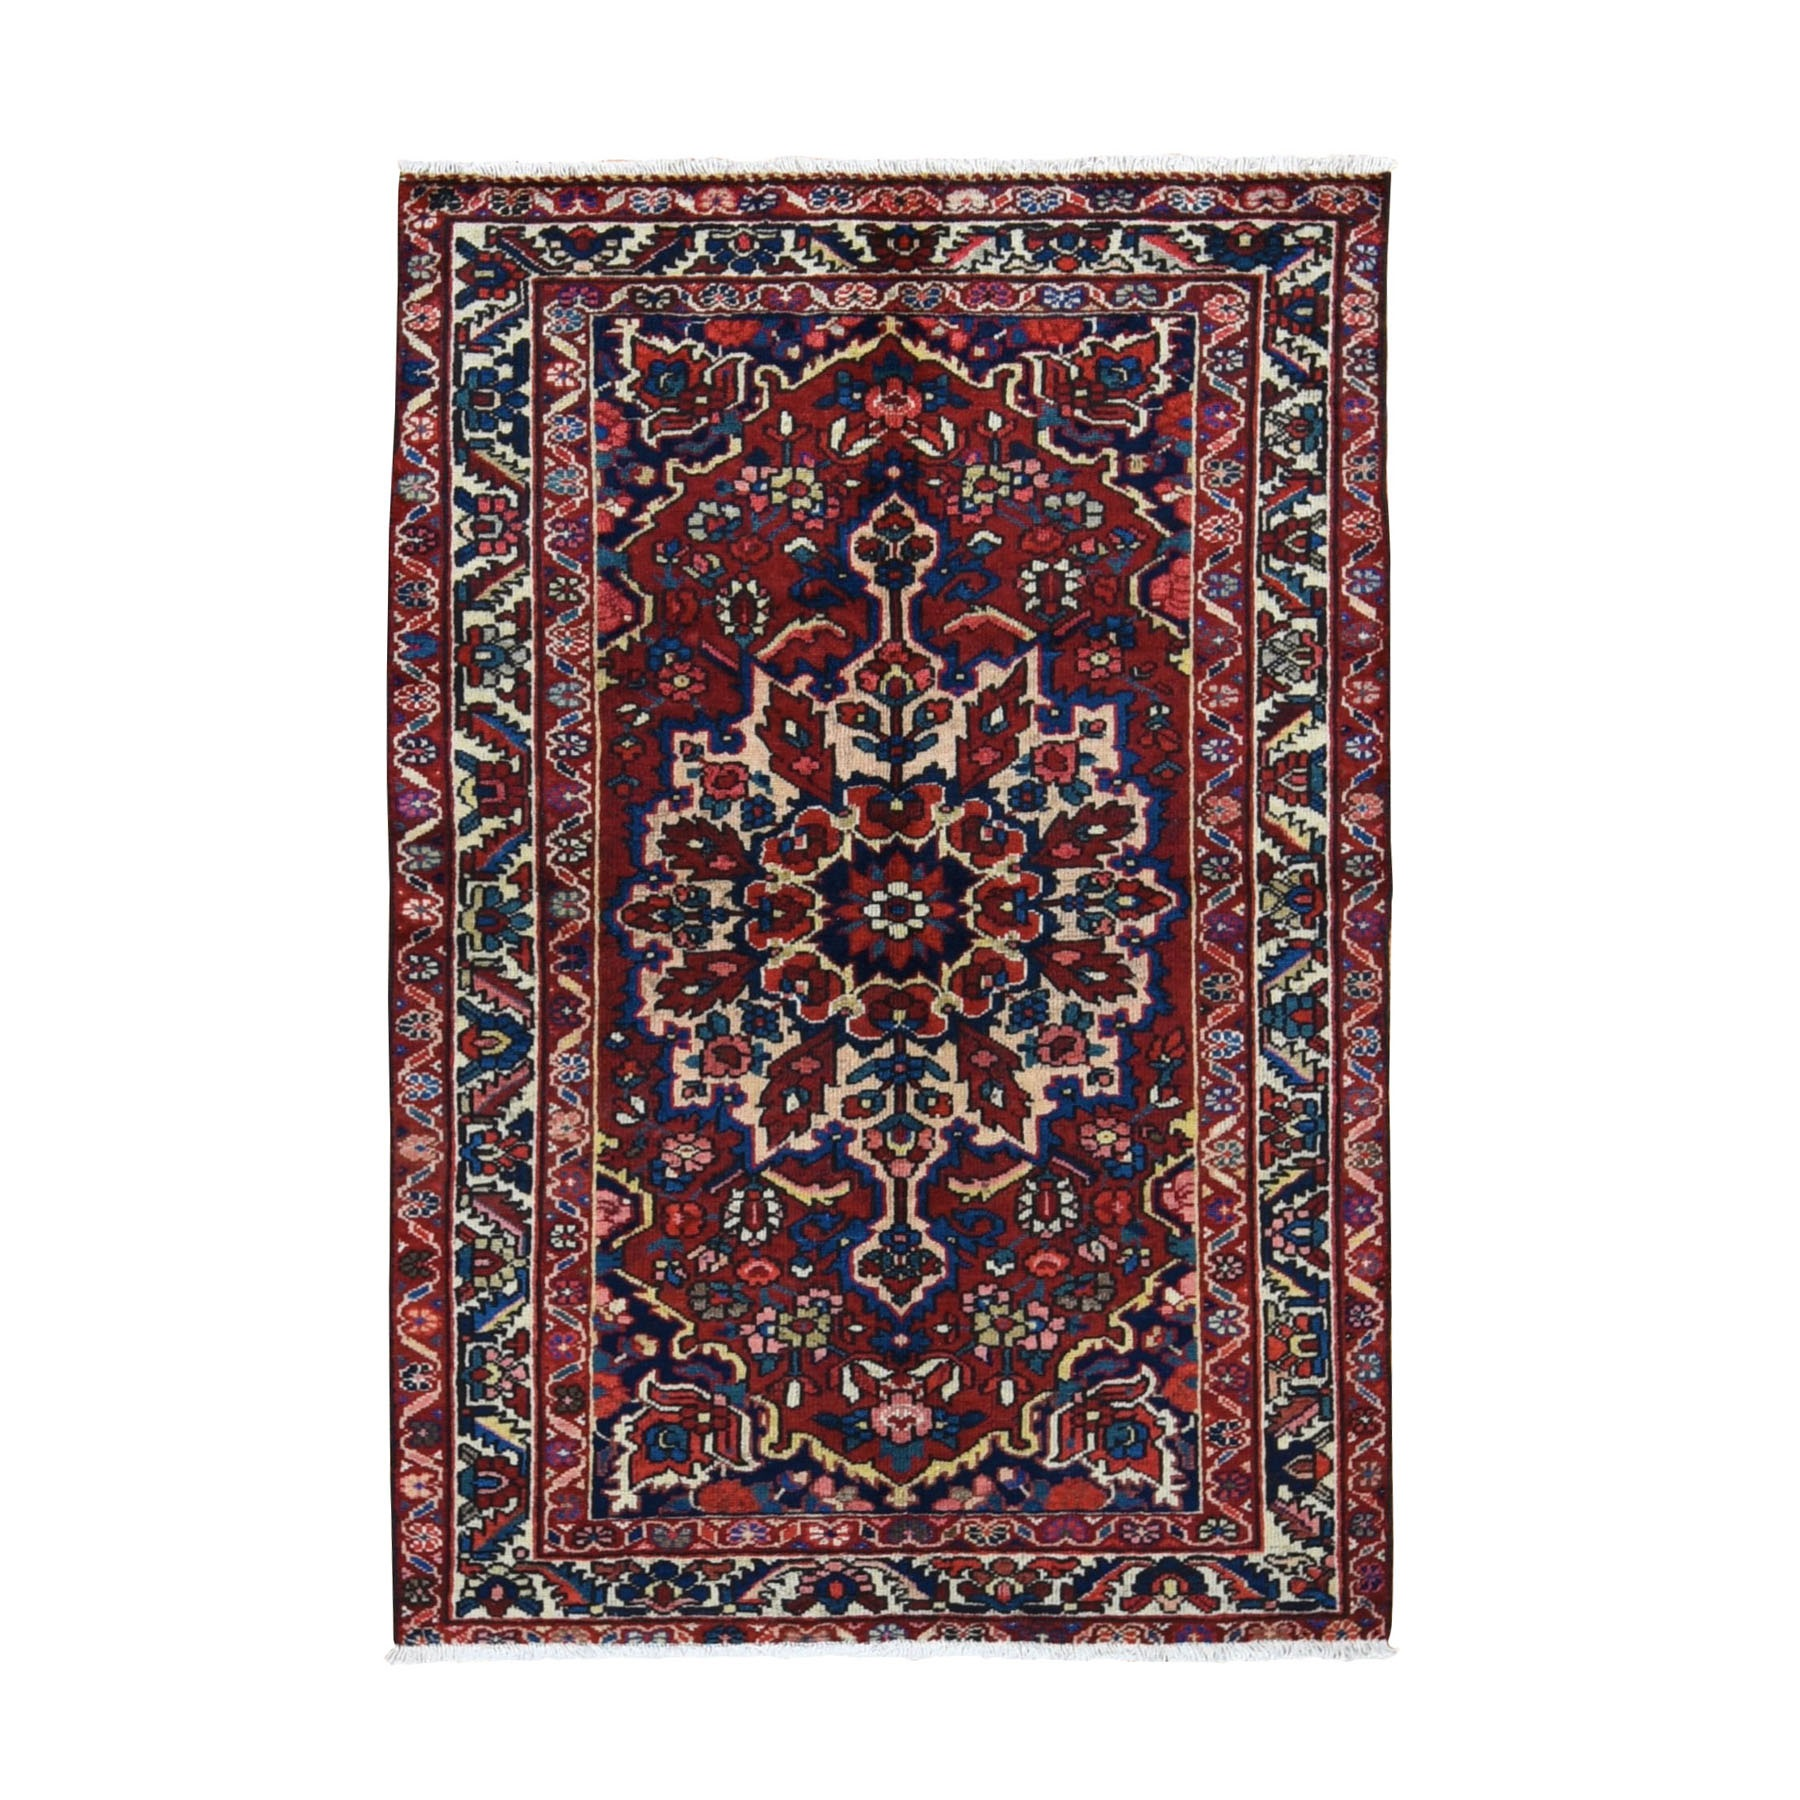 "4'3""x6'8"" Red Vintage Persian Bakhtiari Even Wear Pure Wool Hand Knotted Oriental Rug"